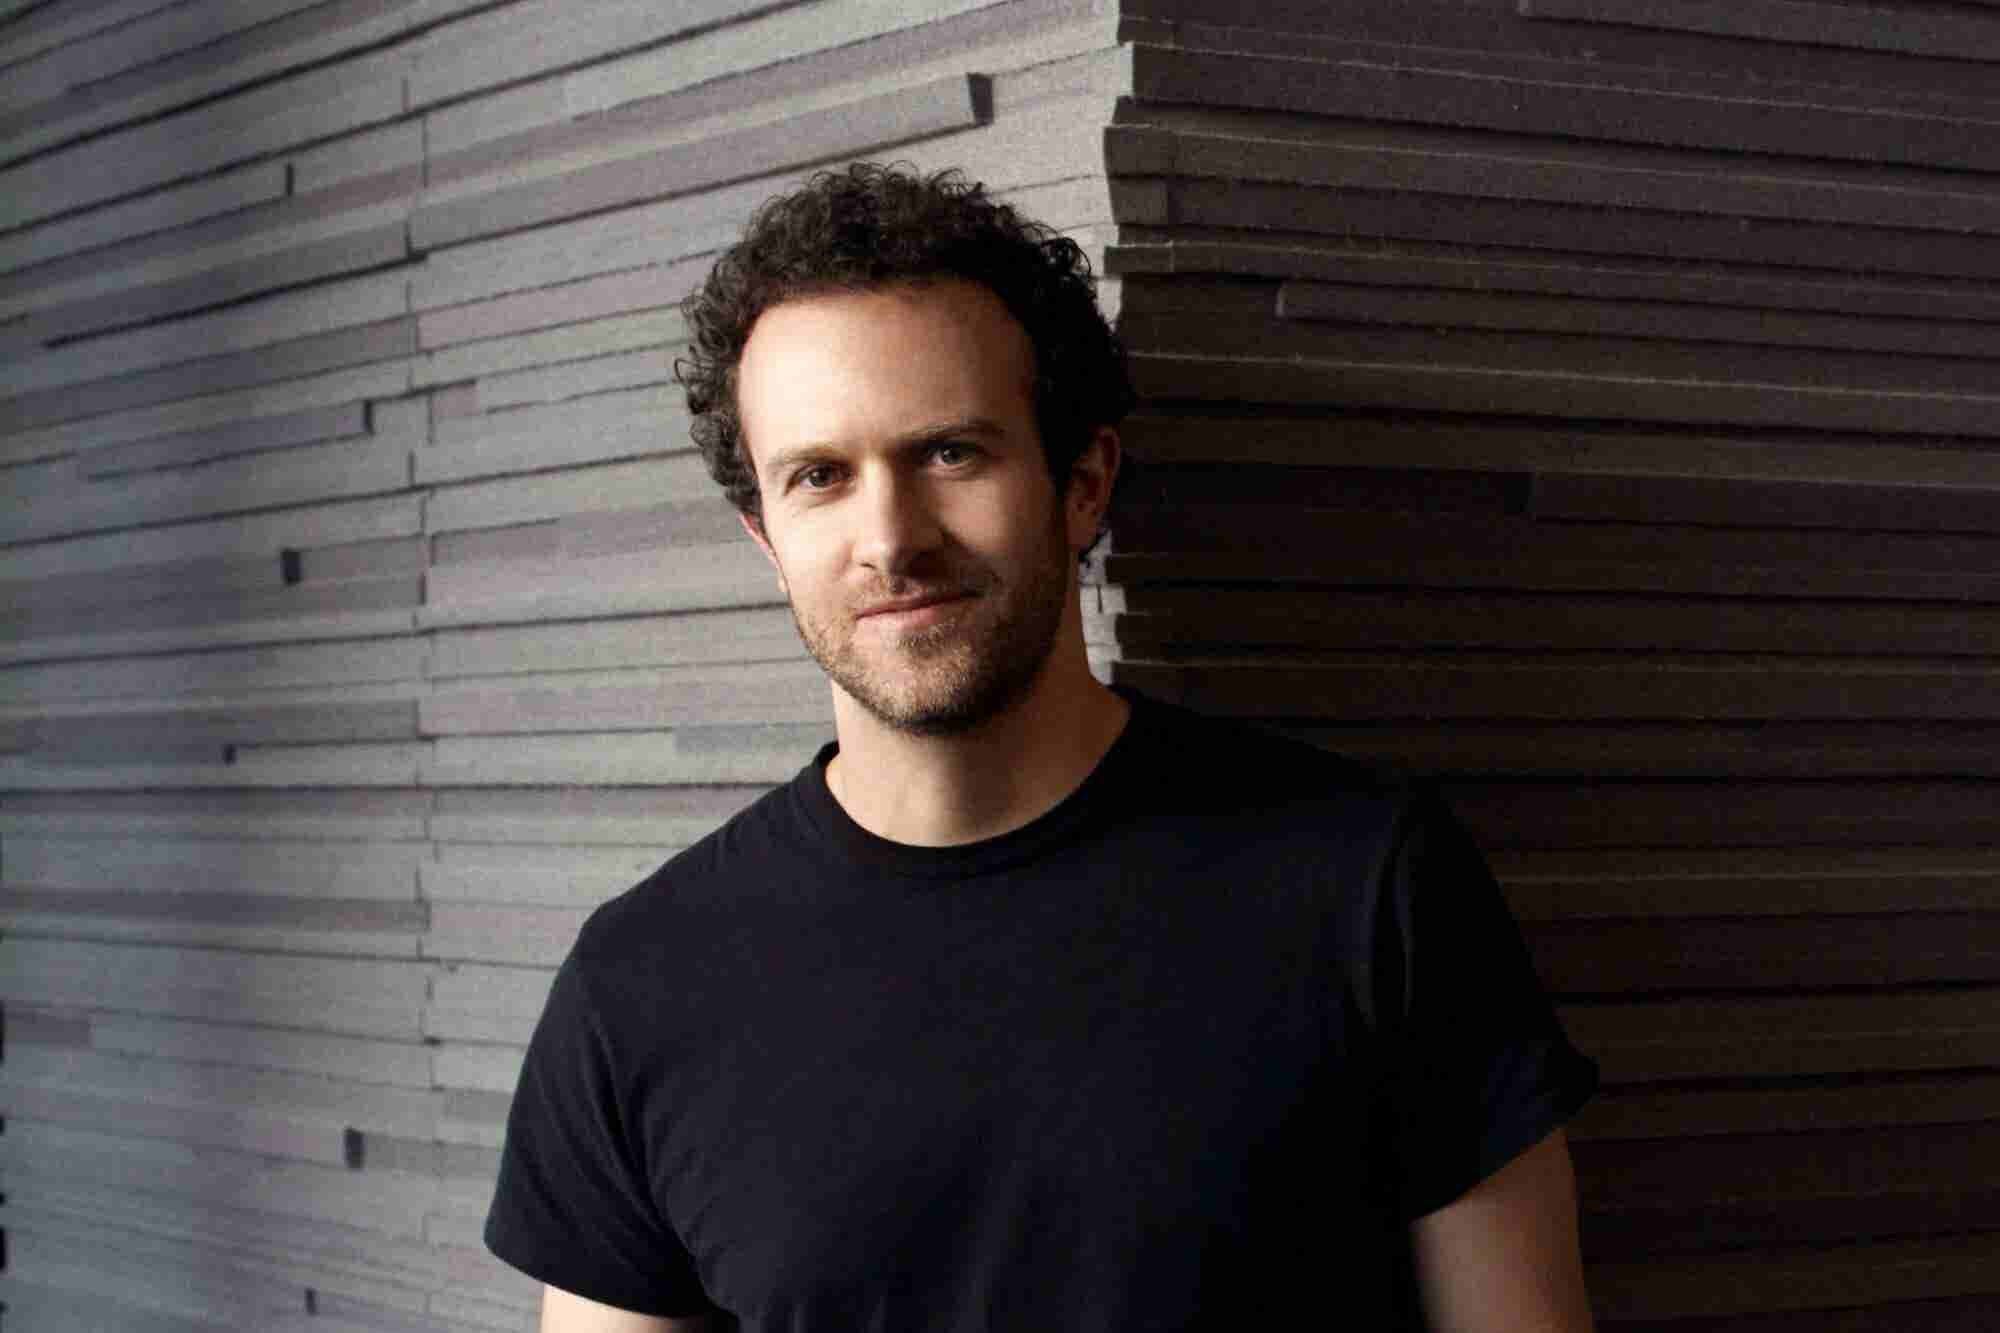 Basecamp Co-Founder and CEO Jason Fried Explains How to Make Work Less Crazy